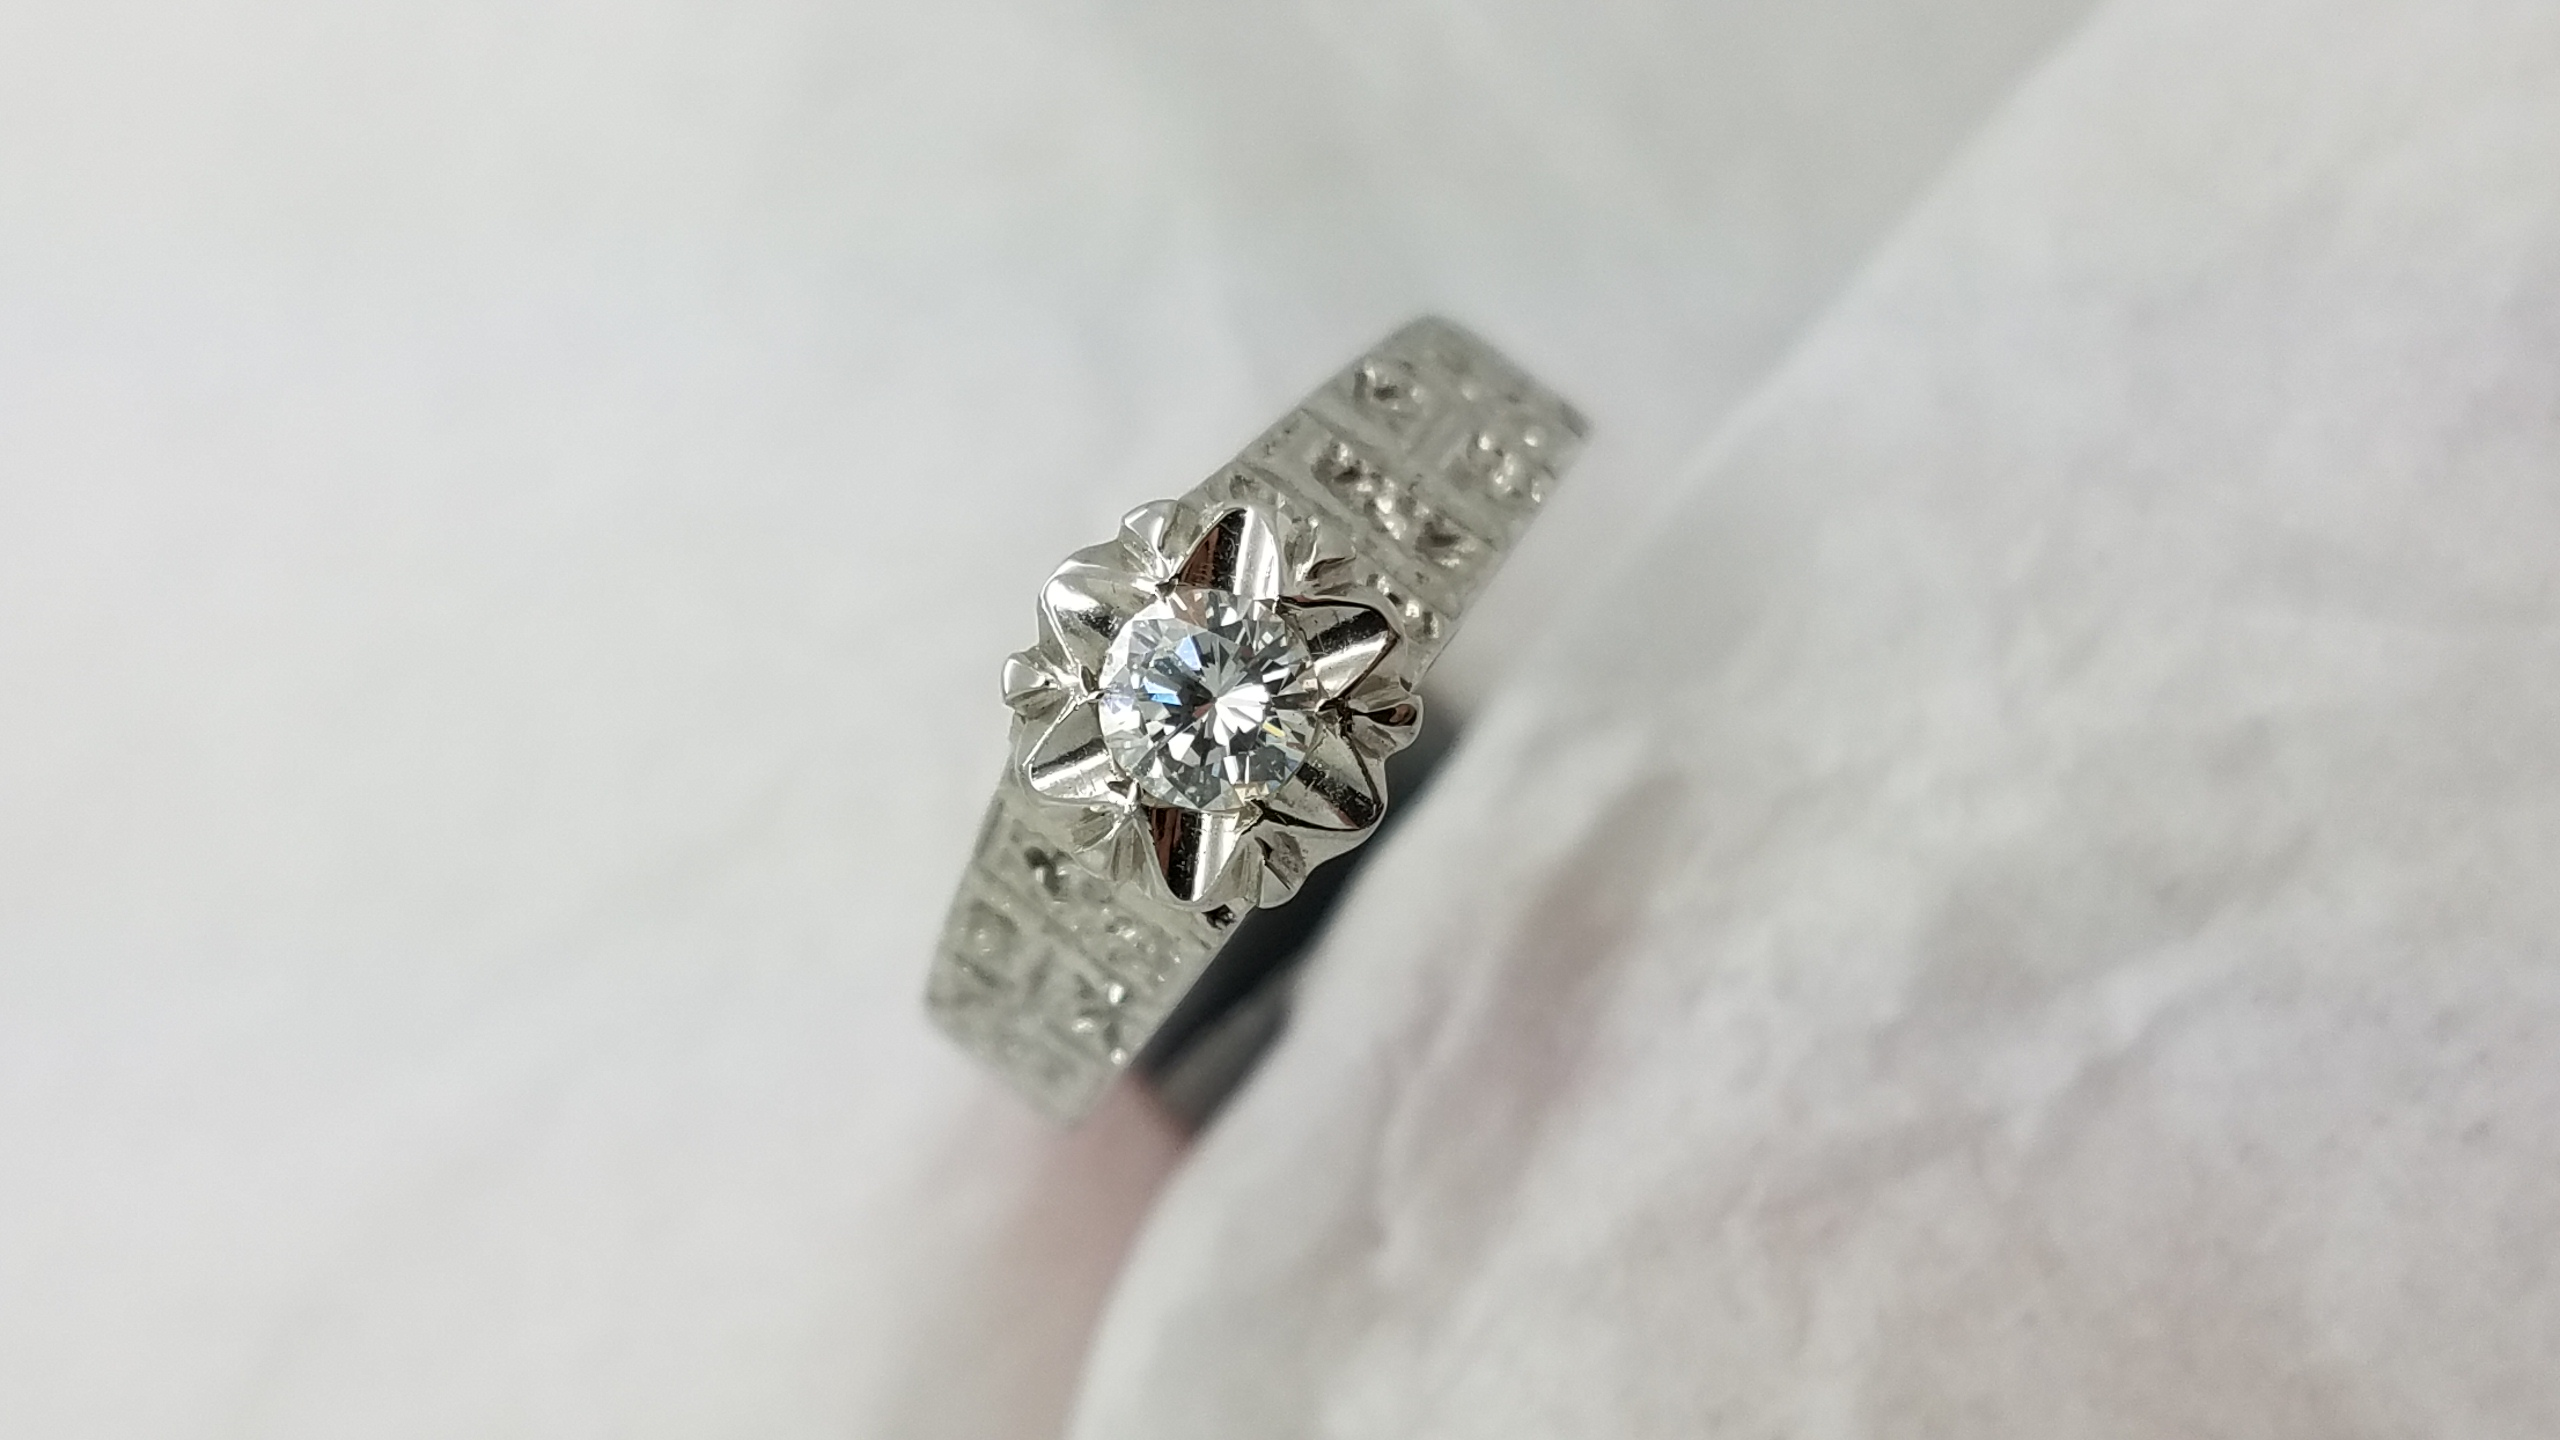 18K	White Gold	Vintage style	0.20	ct.	R	Cut	Diamond	Flush-Set	Solitaire with Accents		Engagement-Ring